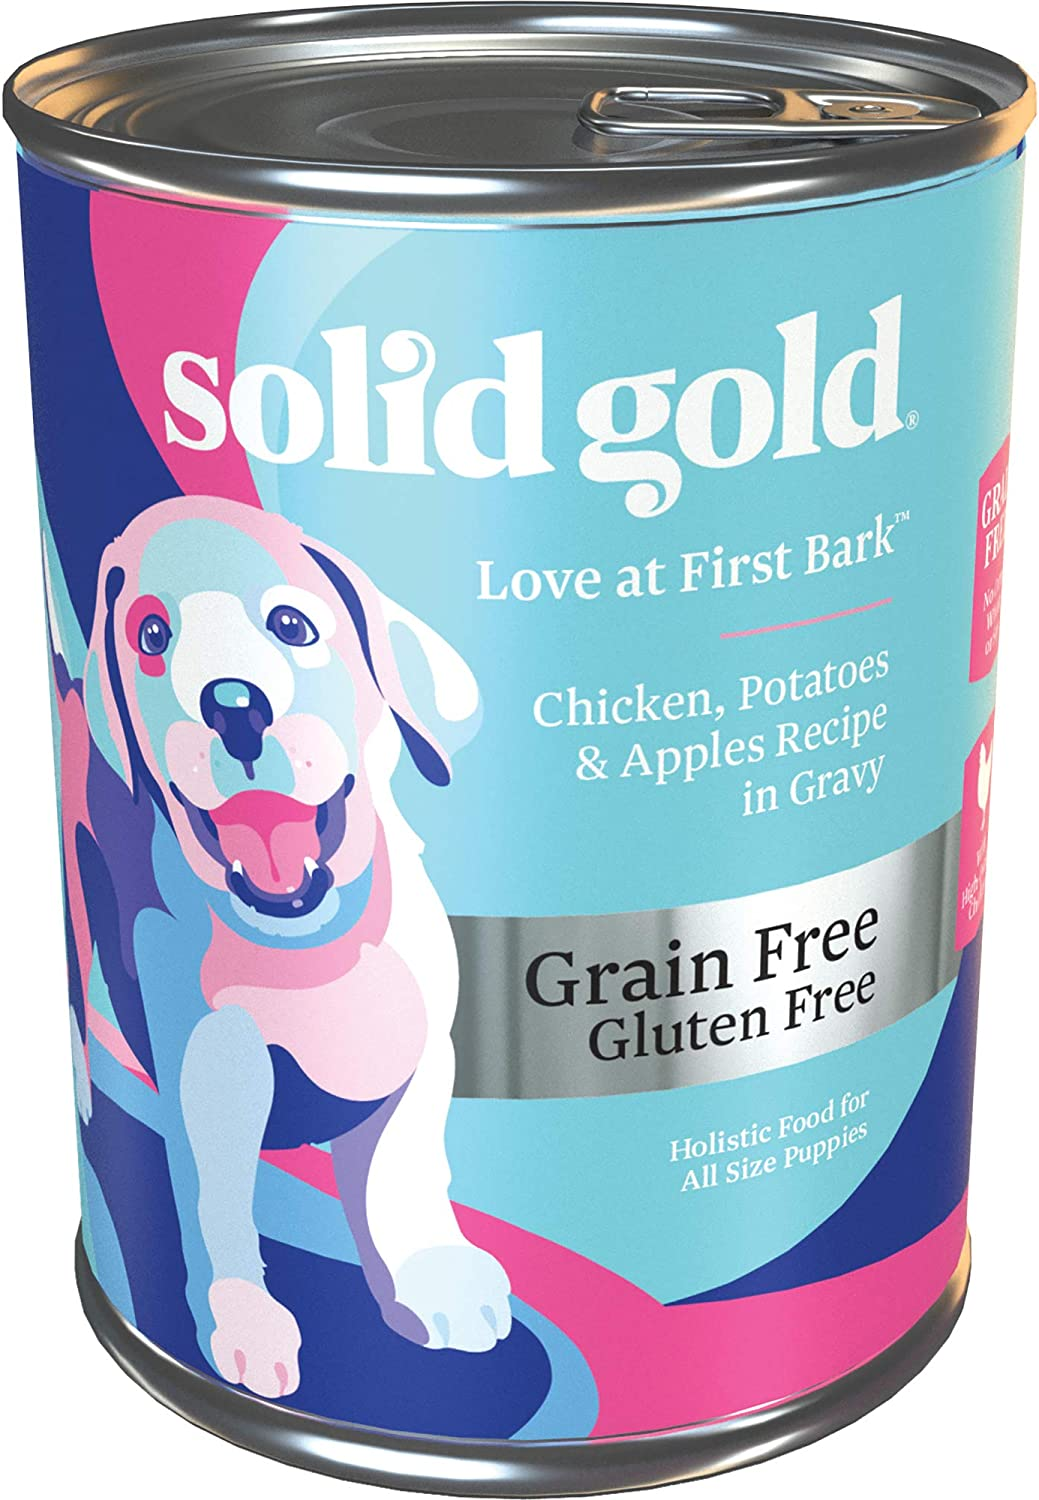 Solid Gold - Love at First Bark with Chicken - Grain Free Wet Puppy Food - 13.2-oz Can (6Count)